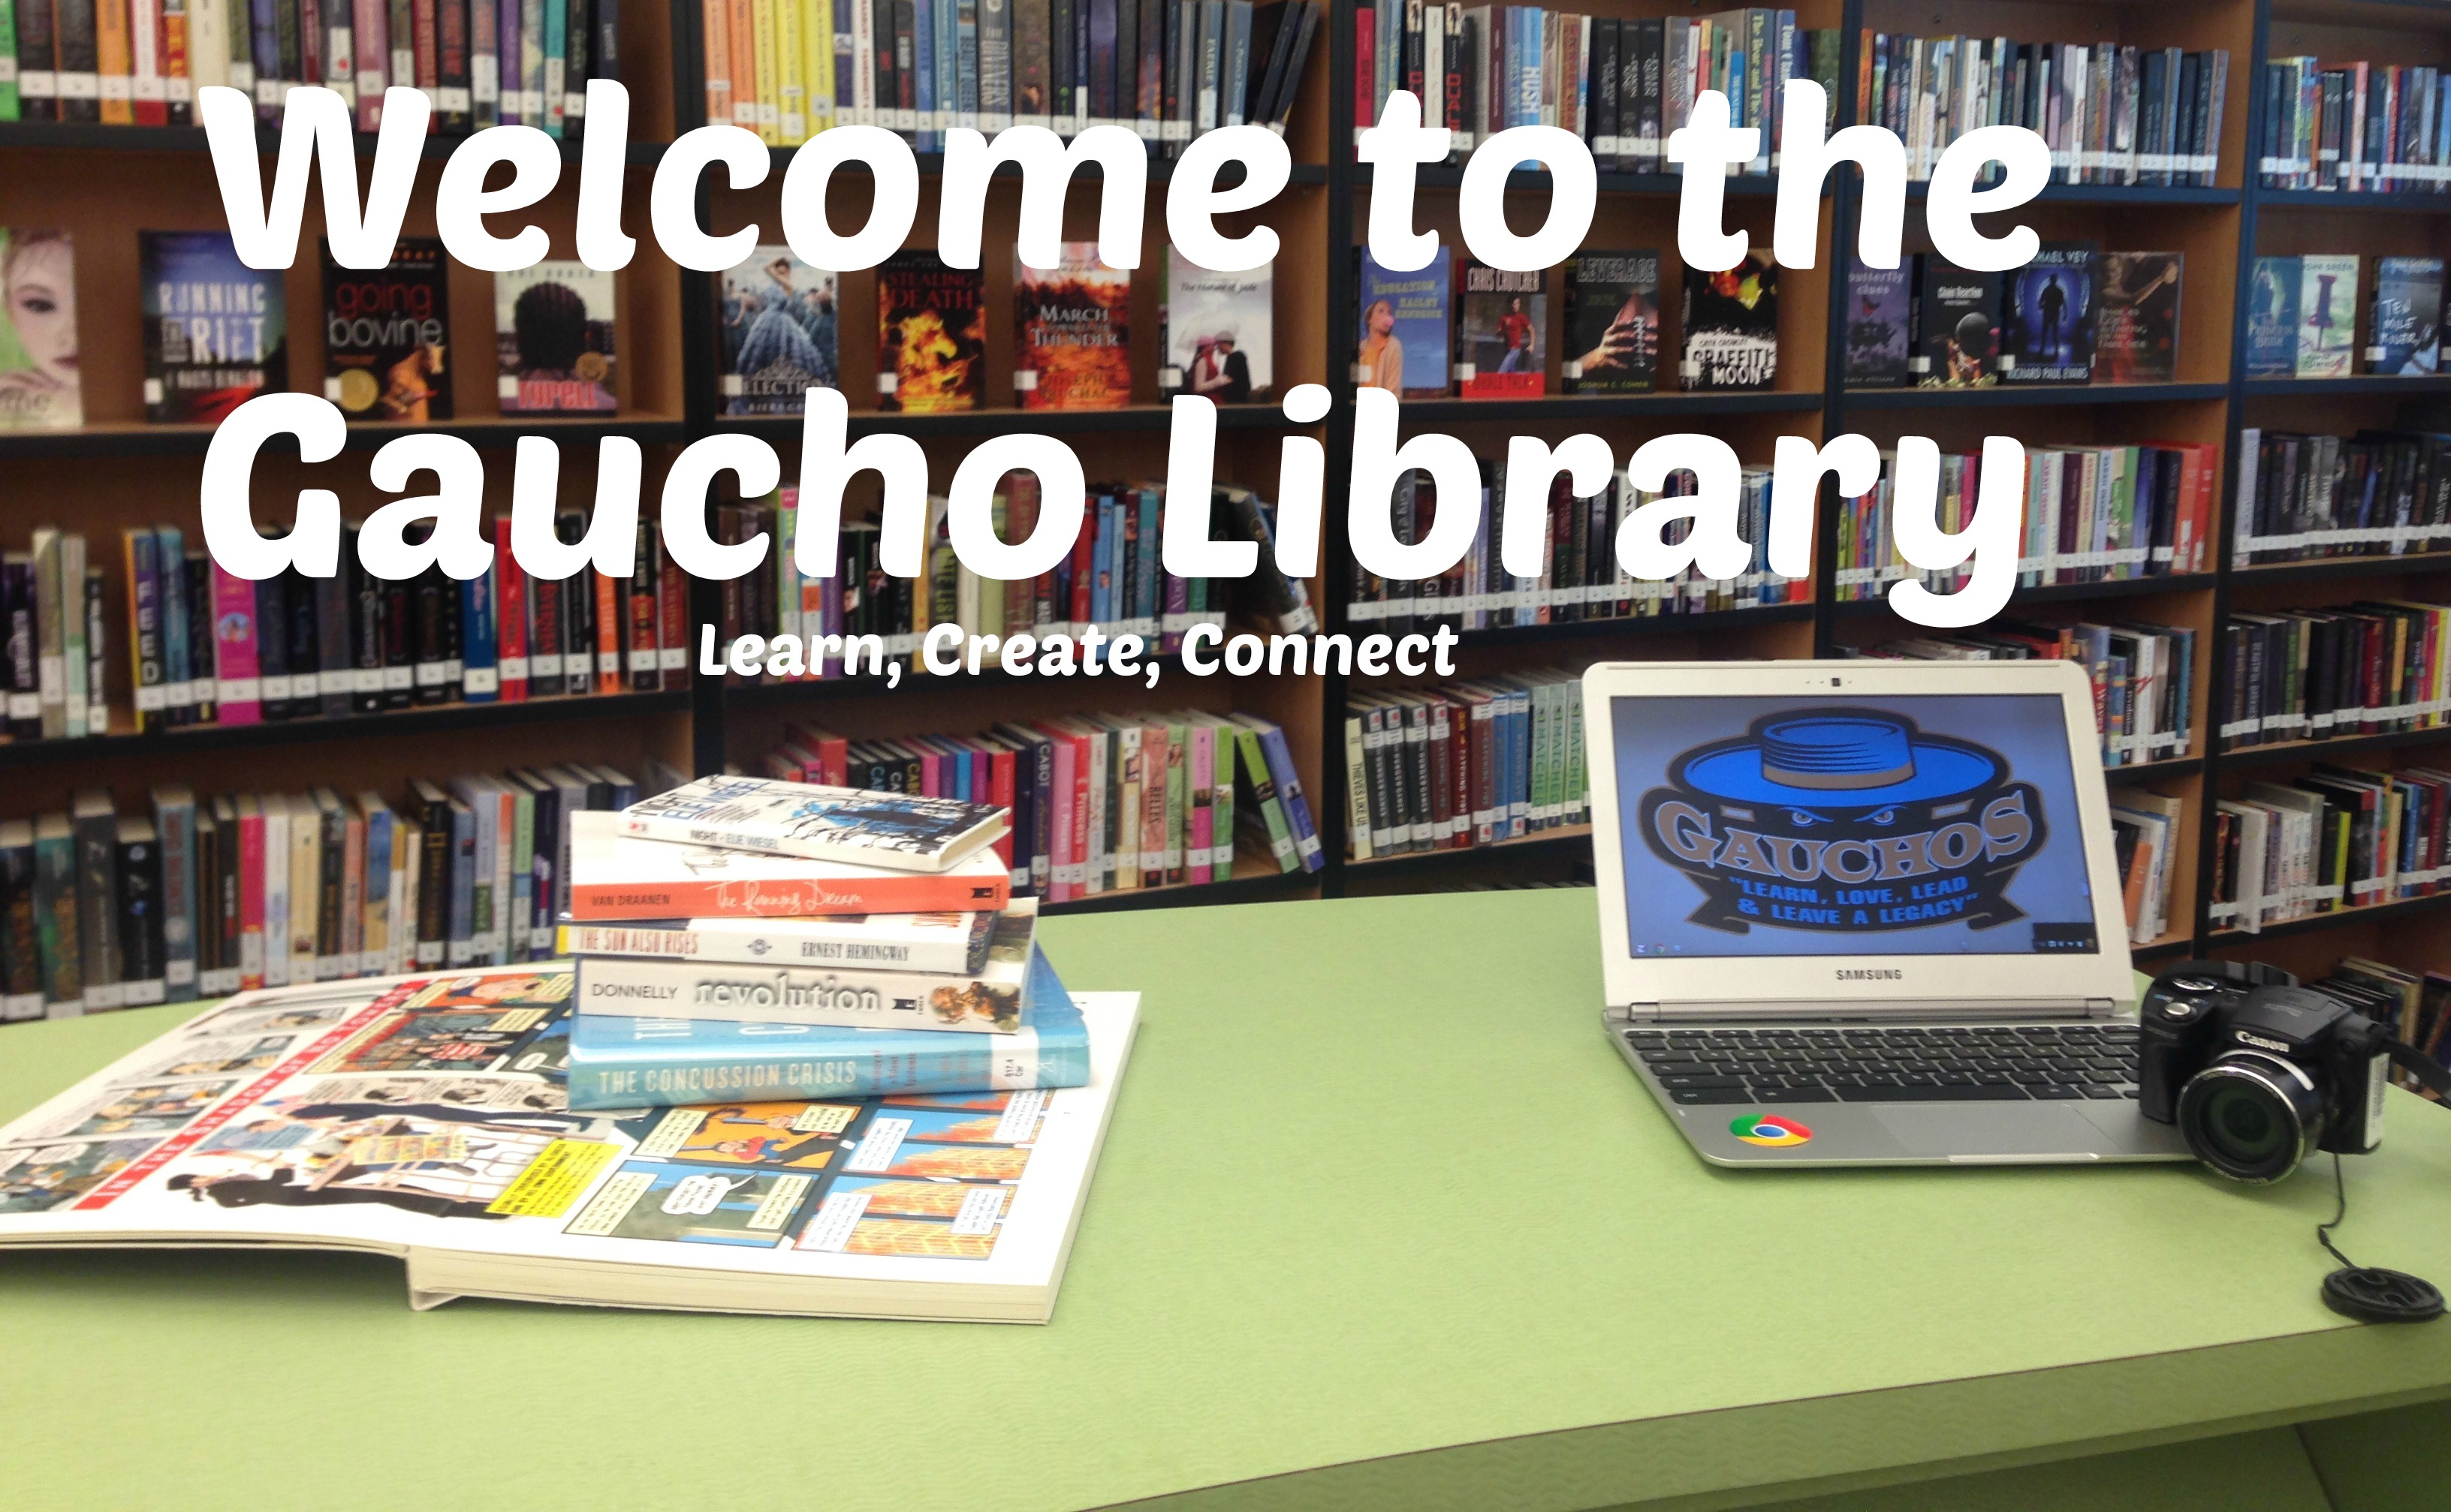 Welcome to the gaucho library.  Learn, create, connect